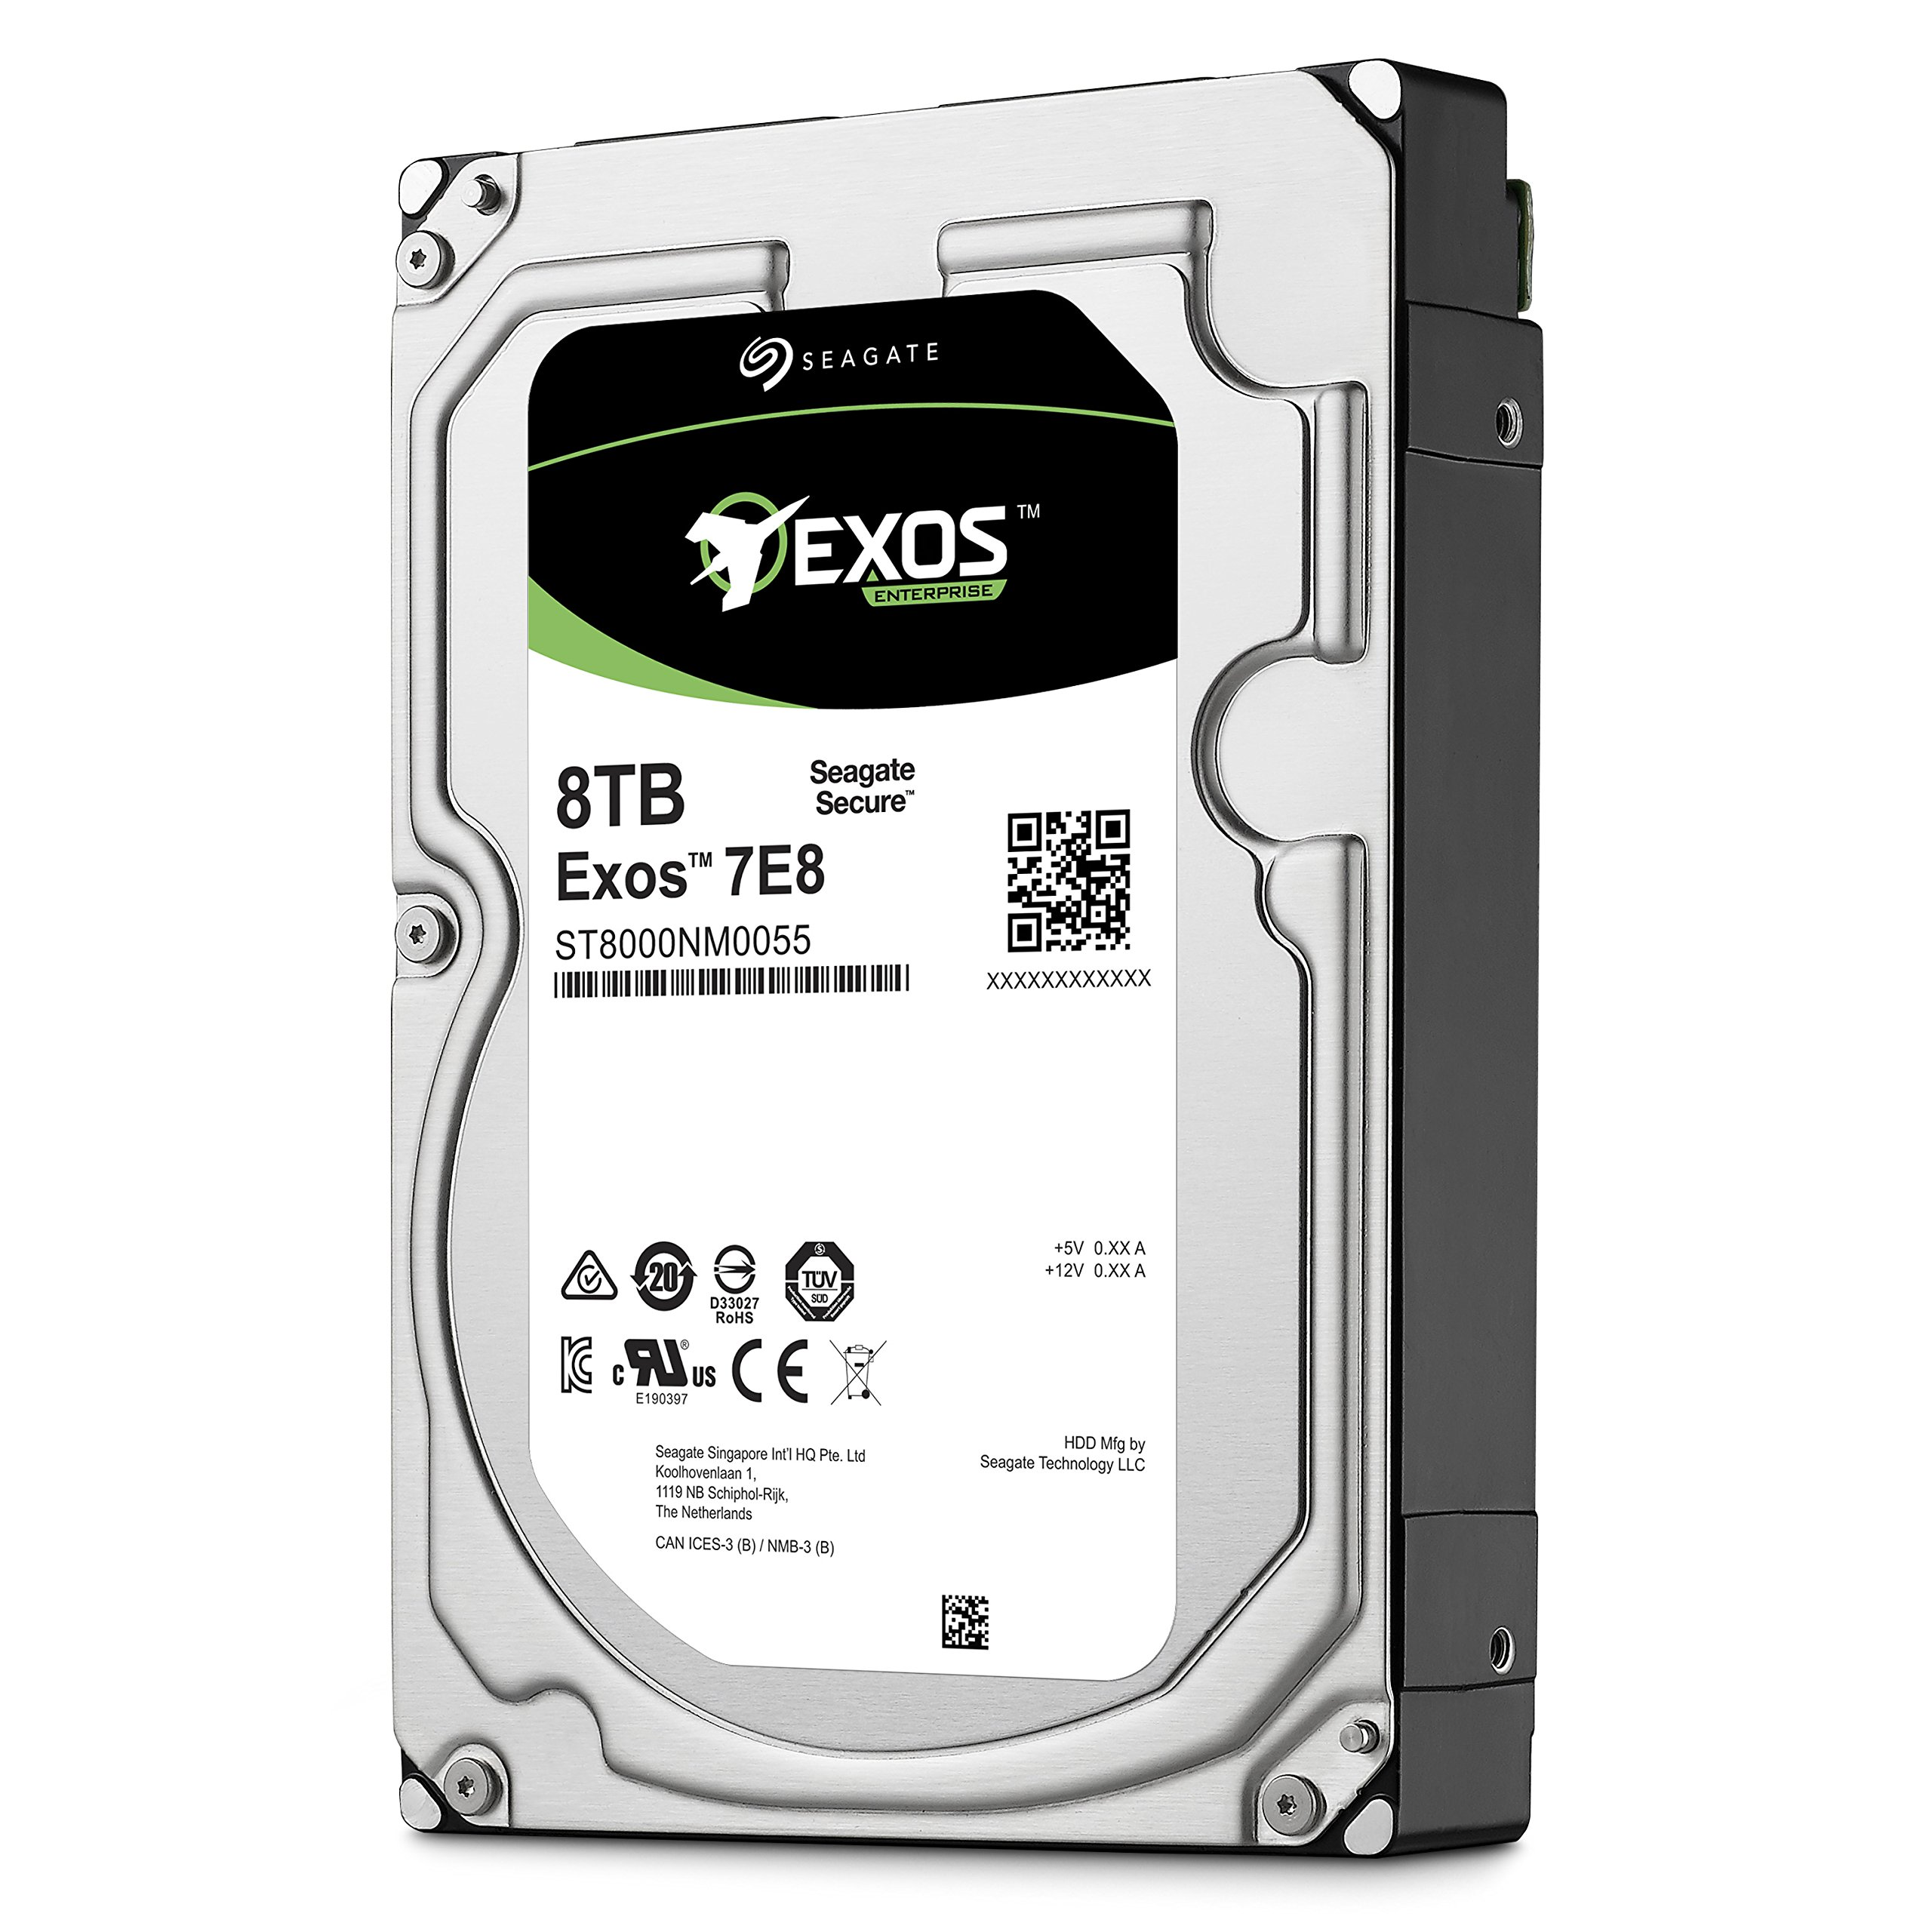 Seagate 8TB Enterprise Capacity 3.5 HDD 7200RPM SATA 6Gbps 256 MB Cache Internal Bare Drive (ST8000NM0055) by Seagate